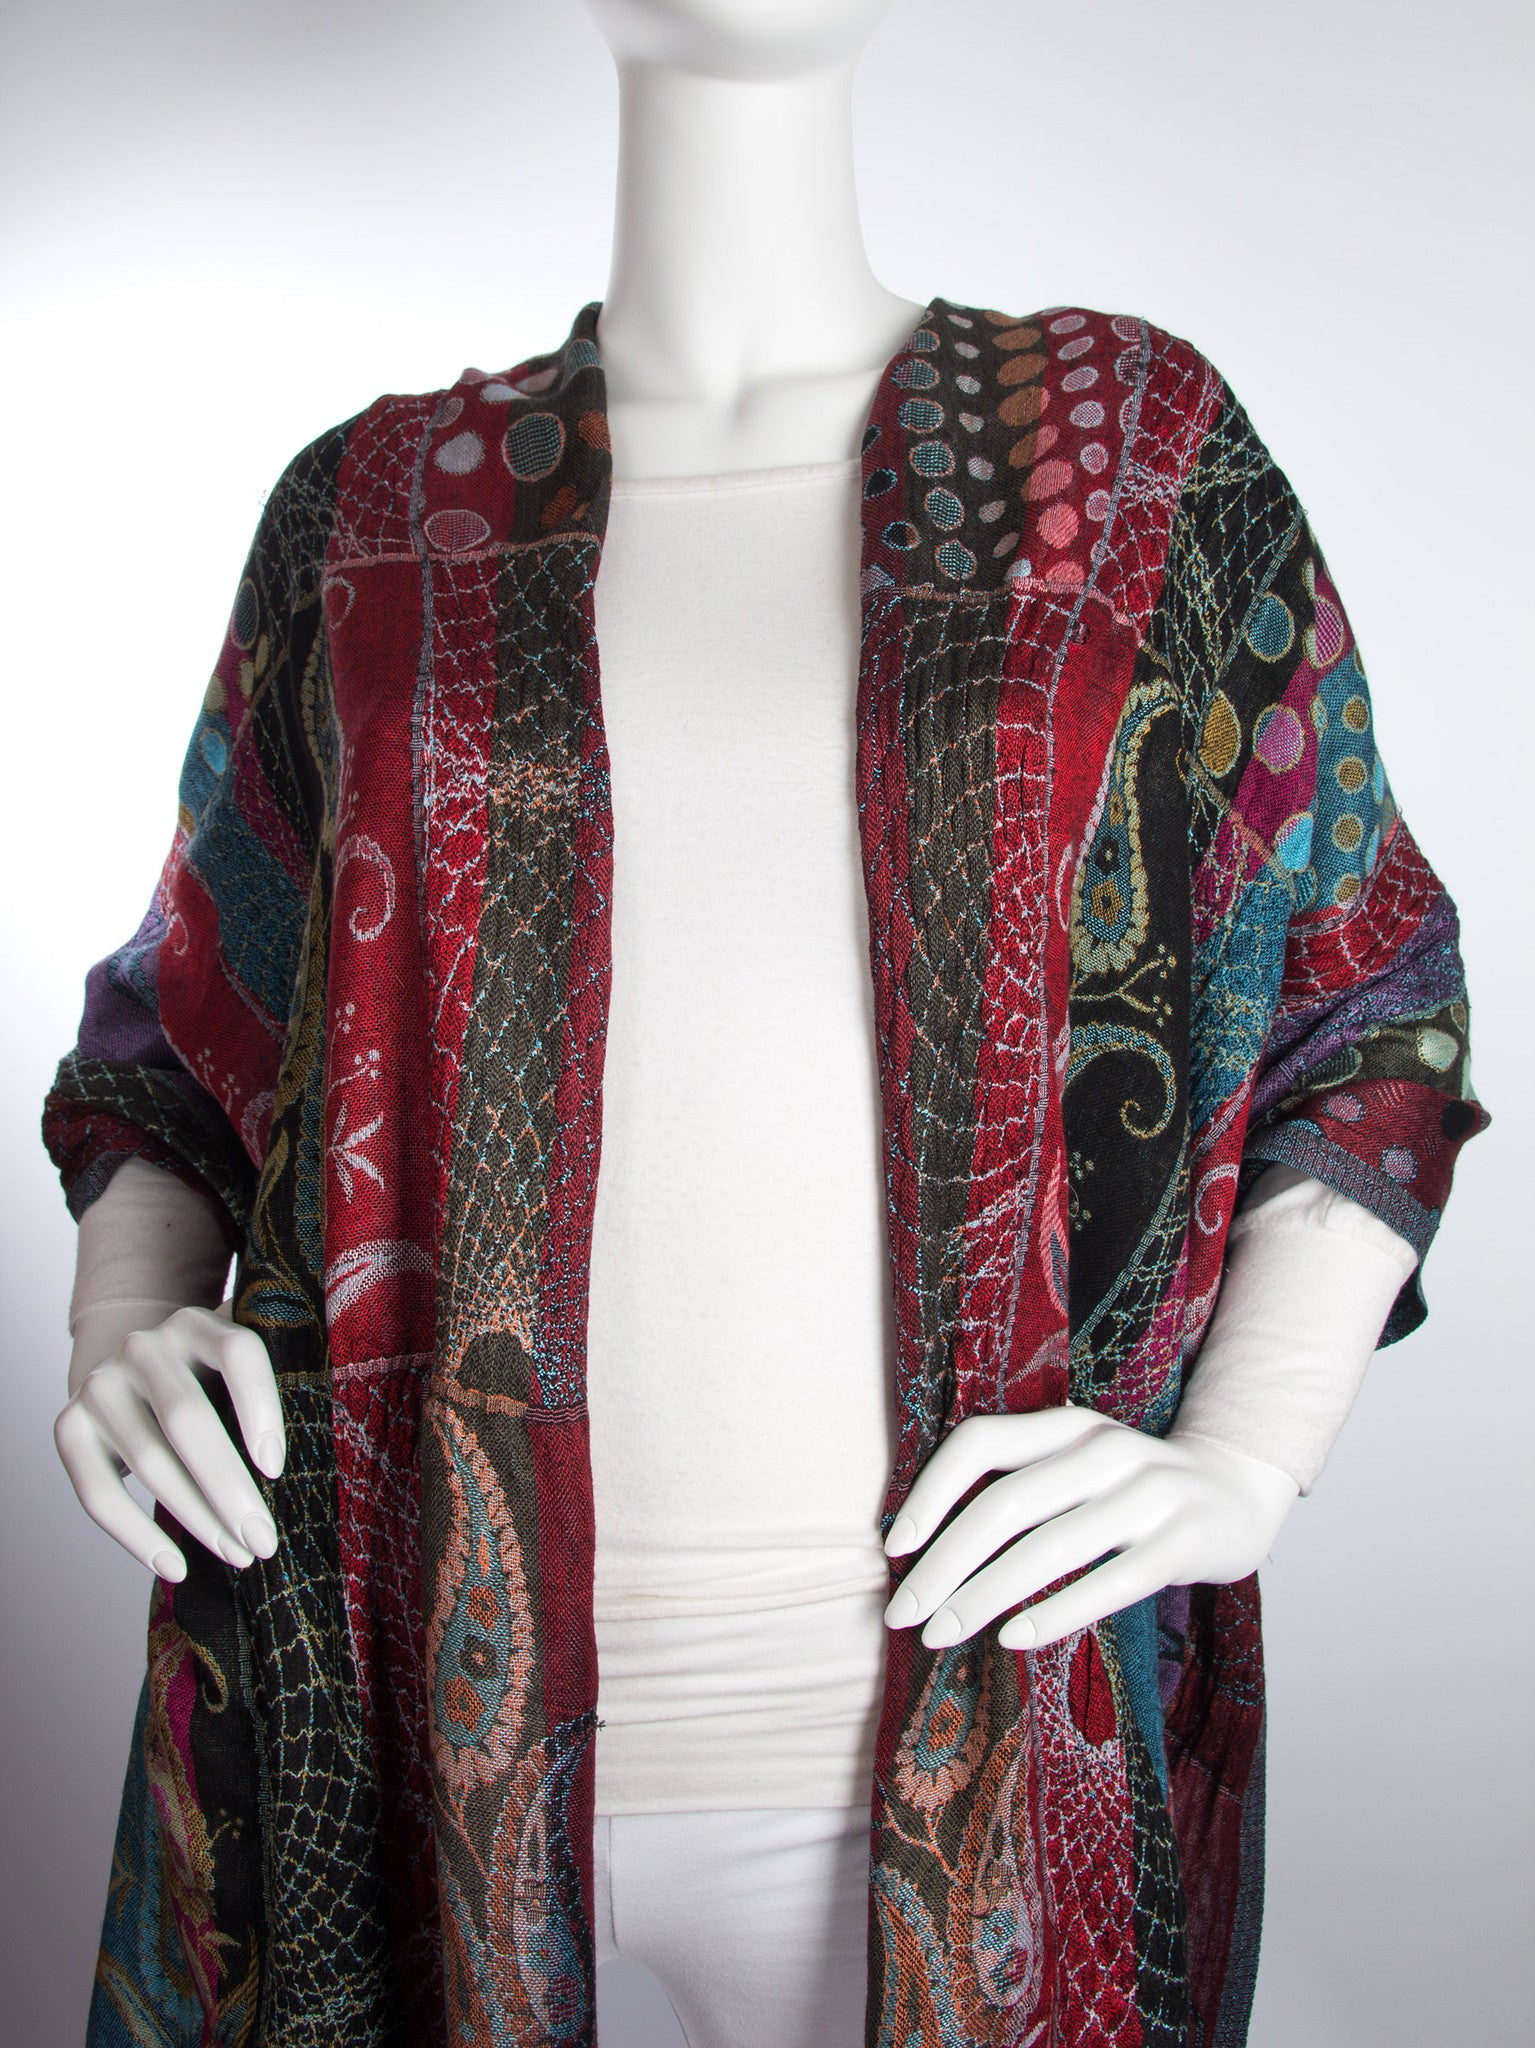 Scarves - Harina Shawl, Woven Reversible Striped Pashmina Scarf, Hand Made in India -() Bohomonde  - 3